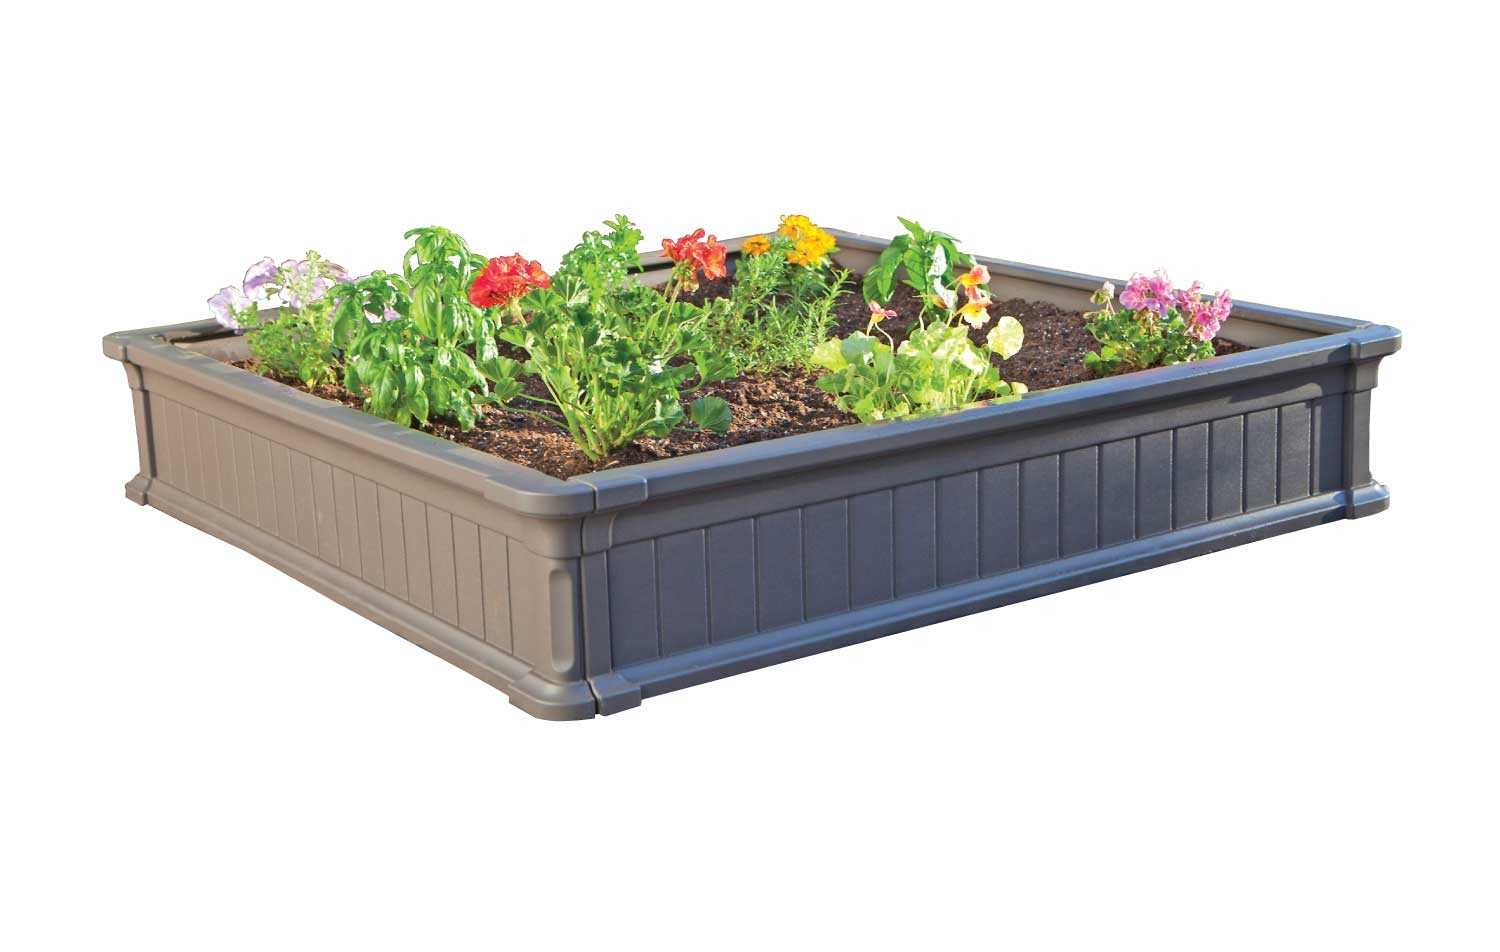 Lifetime 60069 Raised Garden Bed Kit, 4 by 4 Feet, Pack of 3 by Lifetime